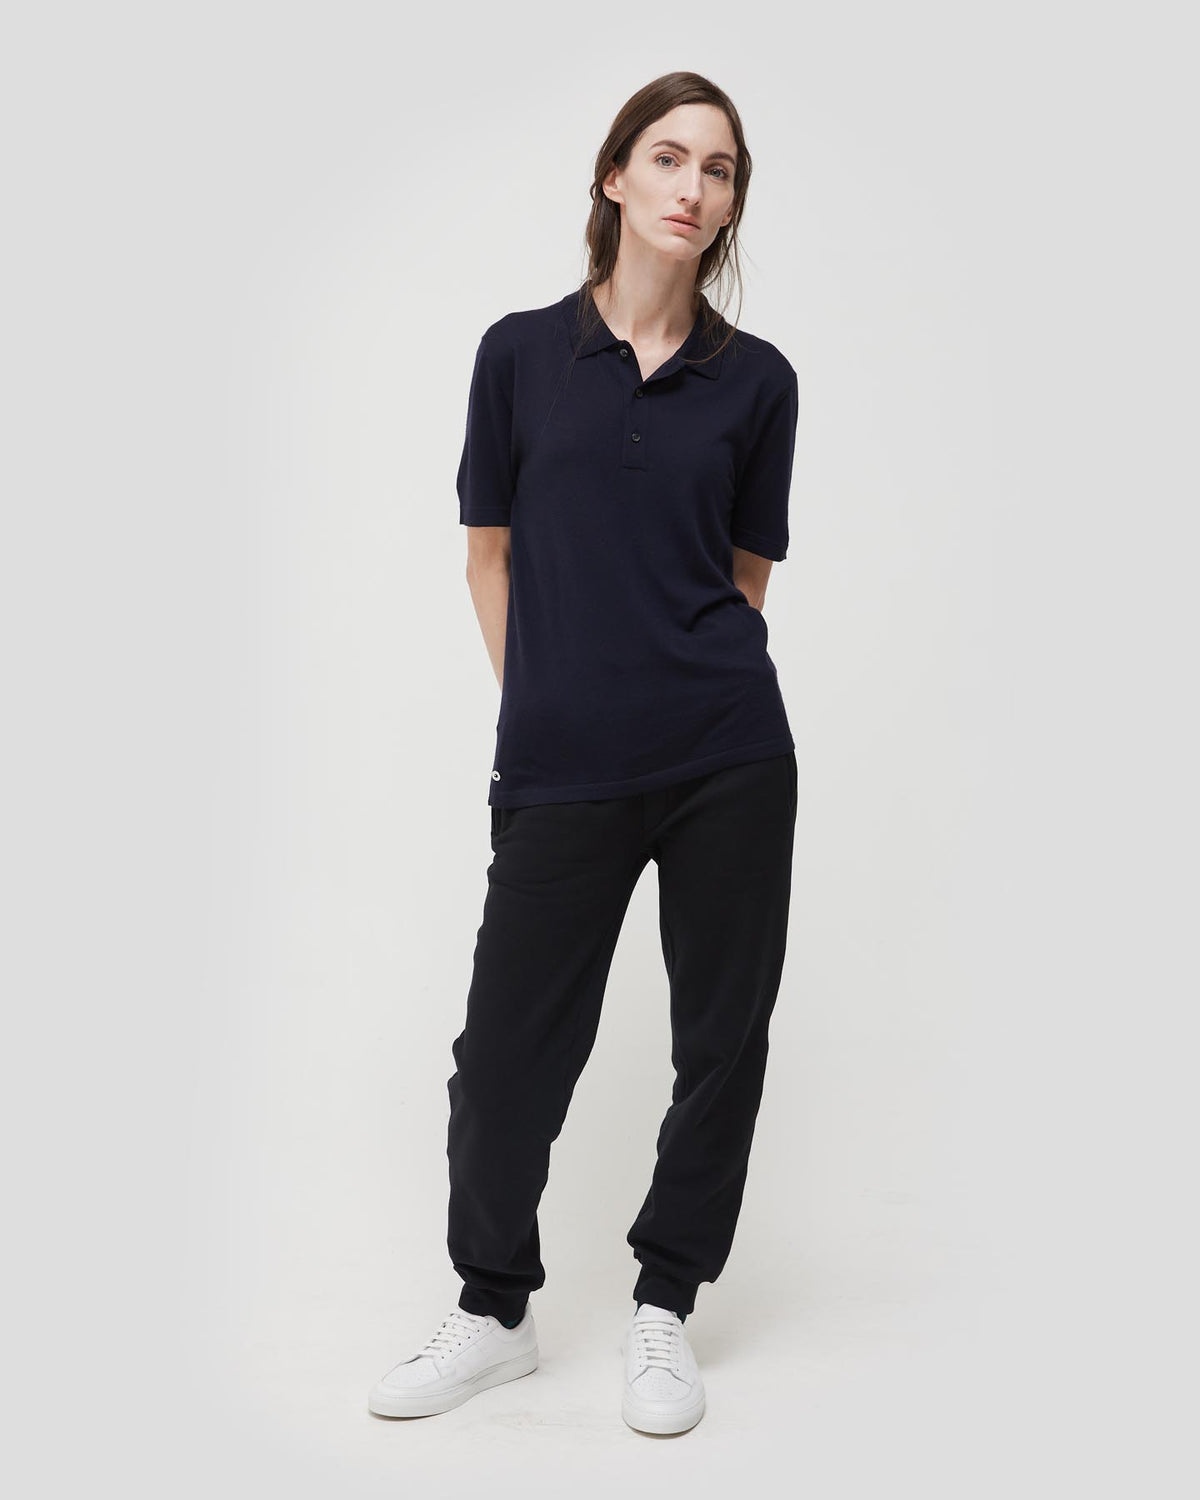 Loreto 2.0 Short Sleeve Wool and Cashmere Unisex Polo Shirt